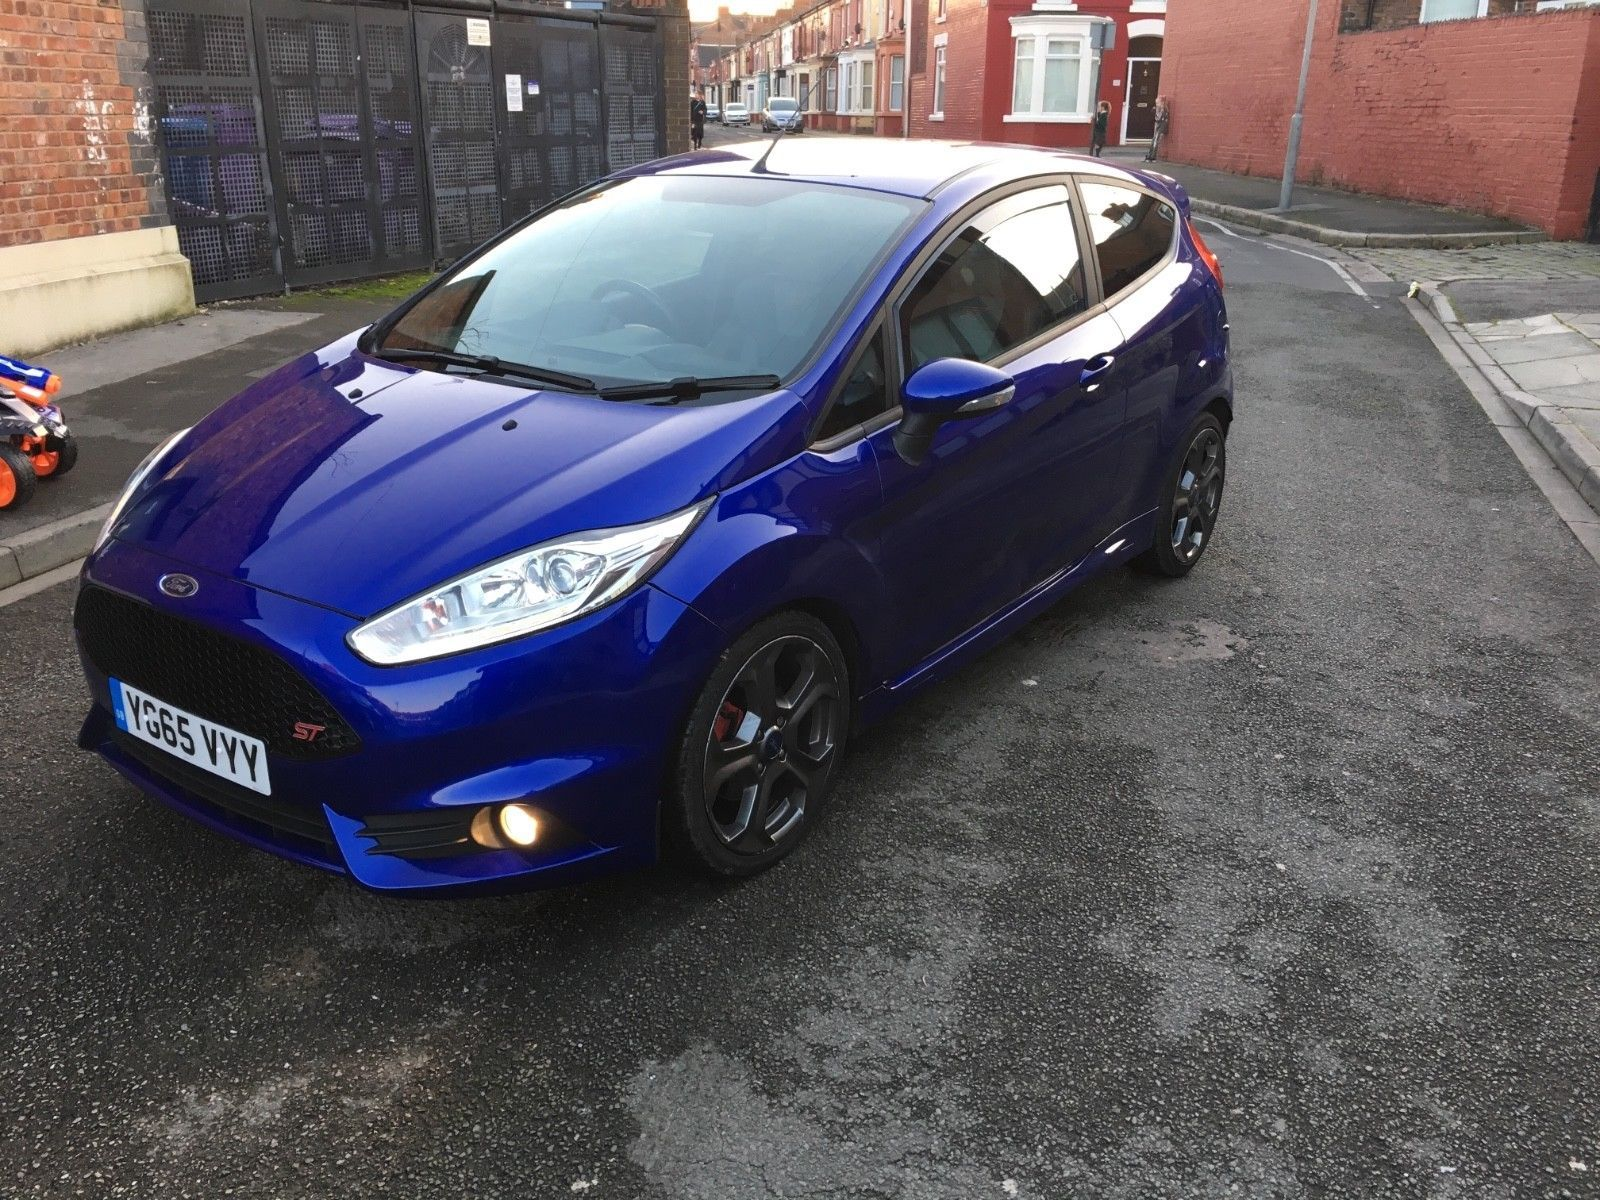 2015 65 Ford Fiesta St 2 St 180 1 6 Ecoboost Not Damaged Salvage Drive Away Ford Fiesta St Fiesta St Ford Fiesta